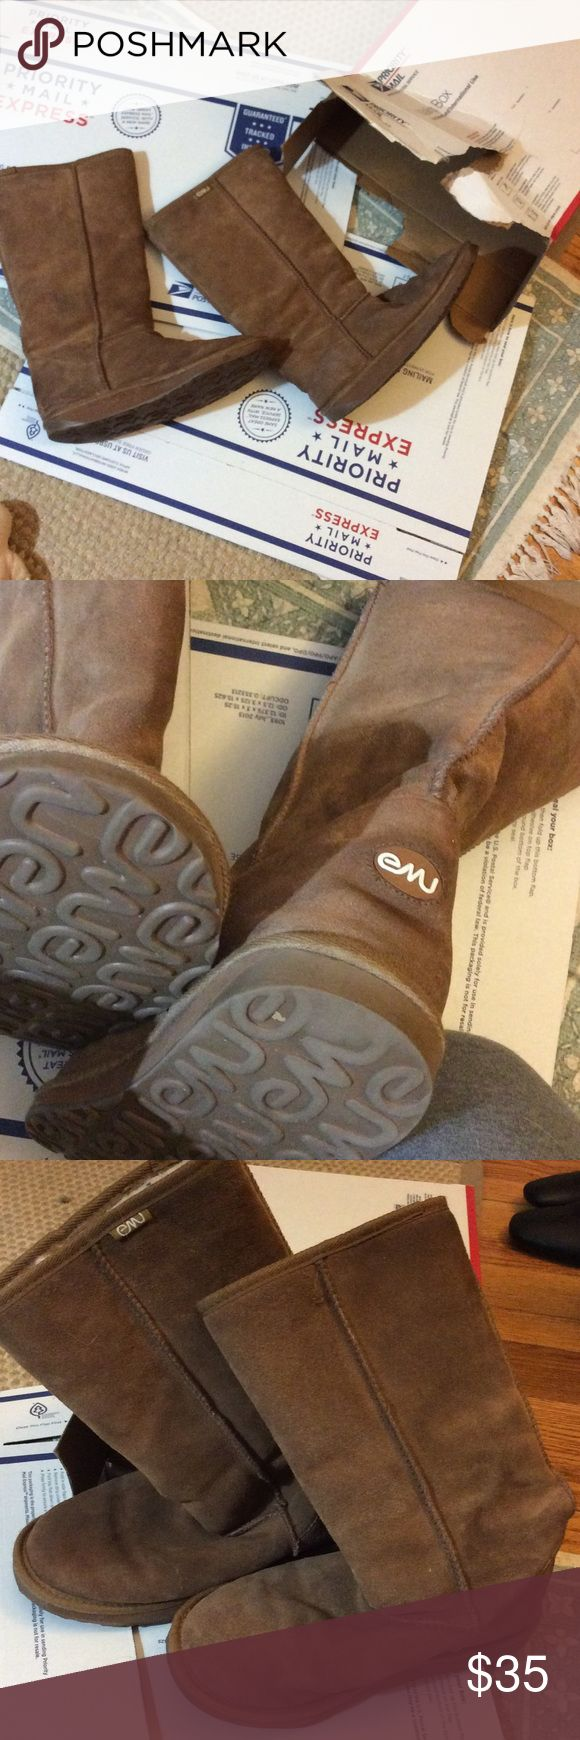 Emu boots Tall emu boots Lamb fur lined Size 7 Good used condition  Some wear on heels  I can't tell the difference between these emus and UGGs very comparable Emu Shoes Winter & Rain Boots